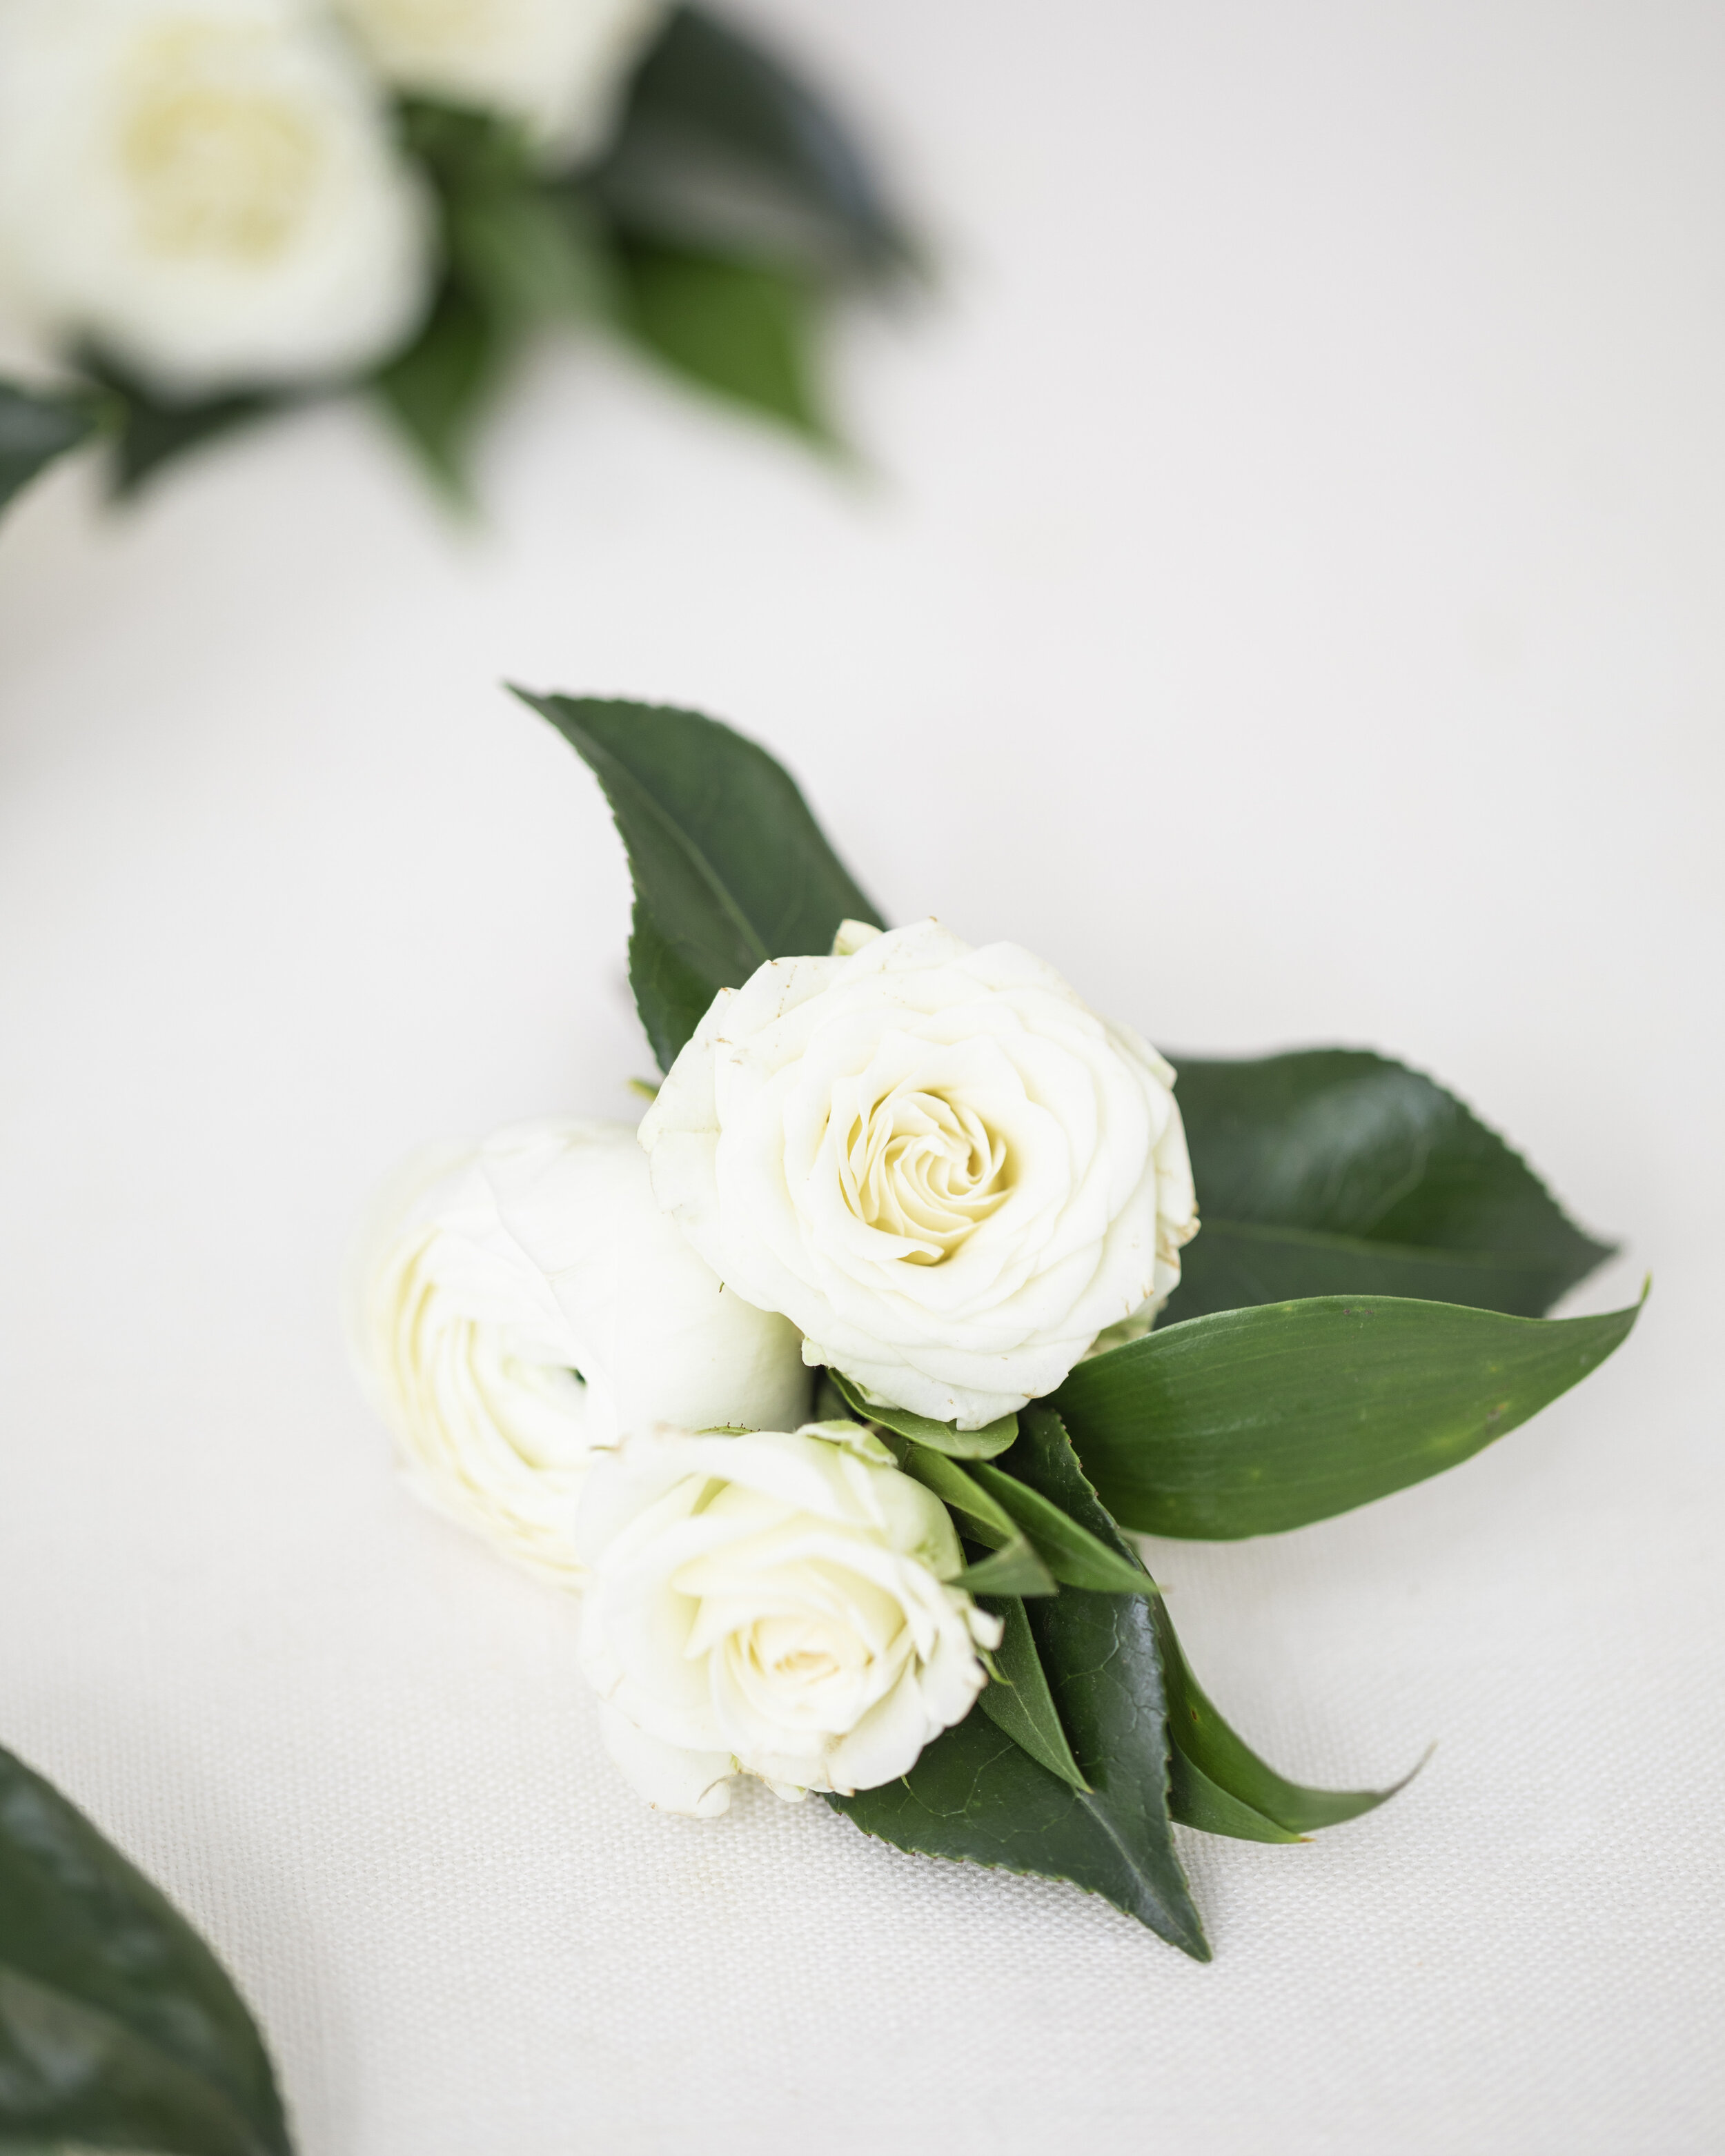 three white roses boutonniere boutonniere inspiration simple unique white wedding floral advise for the utah bride utah provo professional florist boutonniere pose inspiration bright and airy photography tips and tricks provo based #utahflorist #weddingplanning #claritylane #weddingbouquetinspiration #weddingflorals #softbrightlighting #provoutahflorist #provoutah #weddinginspo #provoweddingphotorapher